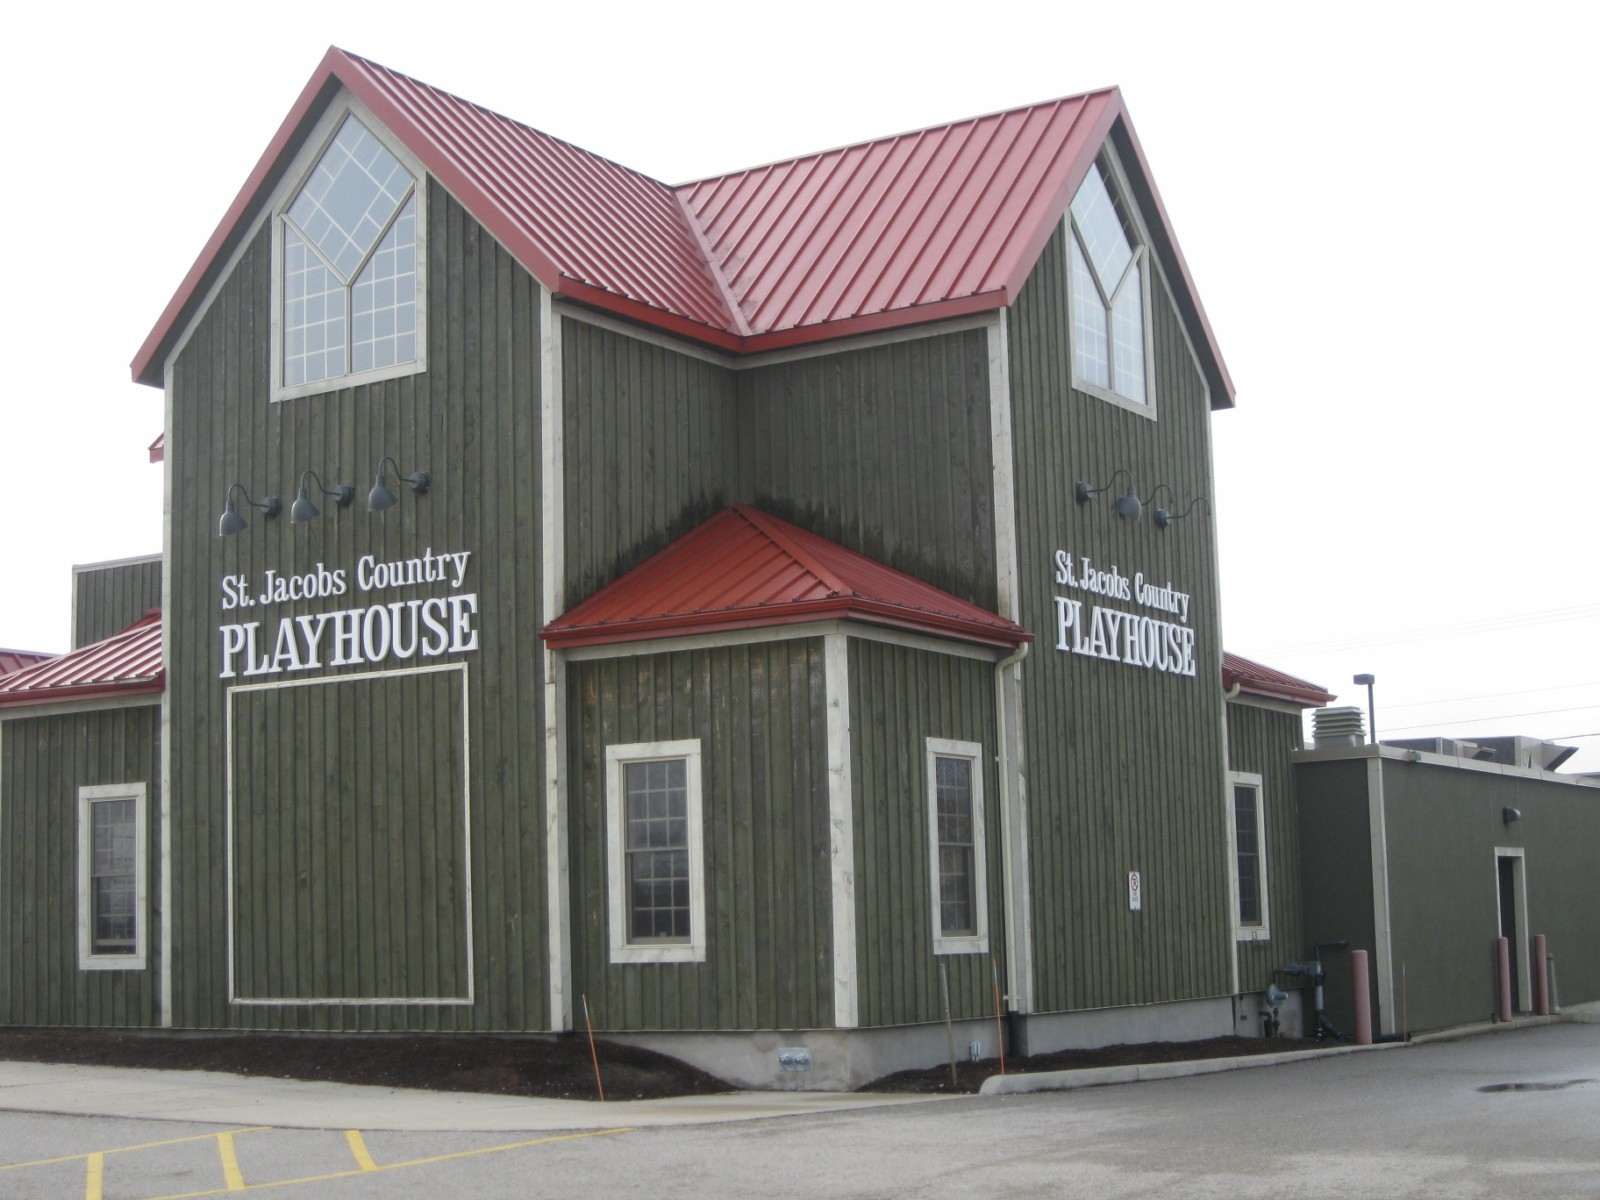 St. Jacobs Country Playhouse Google image from http://www.michelle-wright.com/blog/wp-content/uploads/2011/12/St-Jacobs-Playhouse.jpg